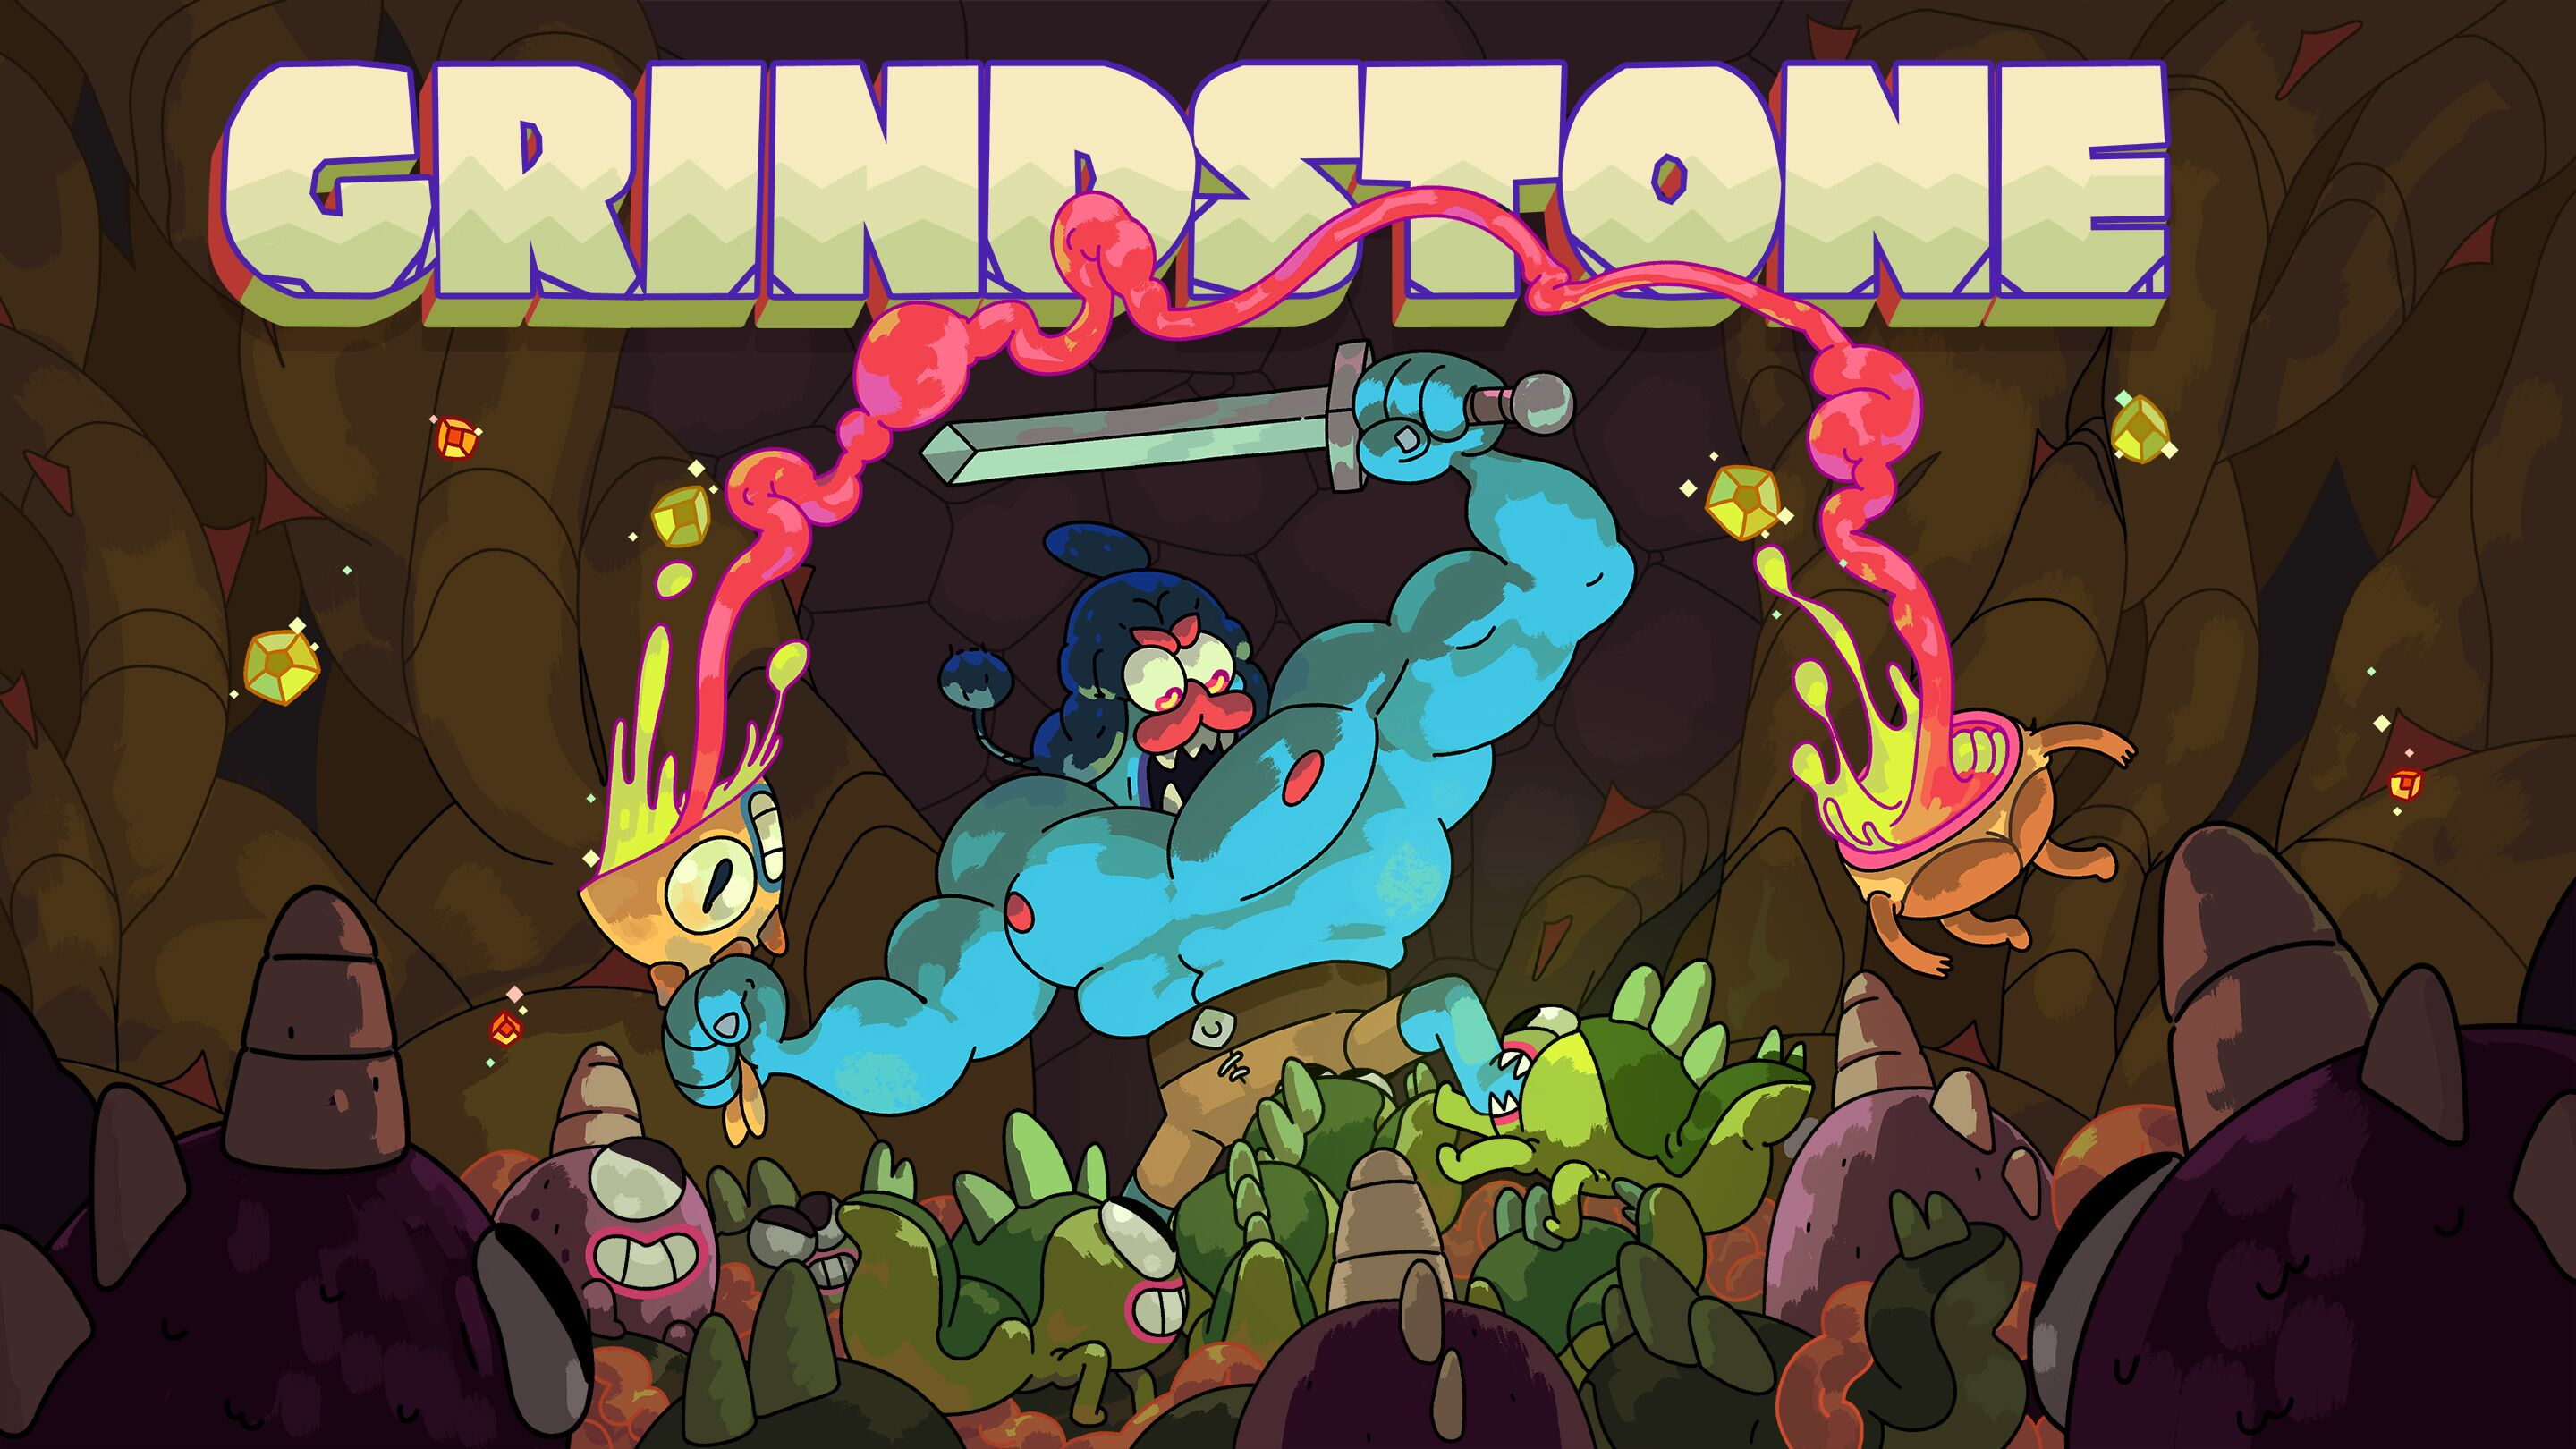 Grindstone is a battle puzzler from Capybara Games that's available on Apple Arcade